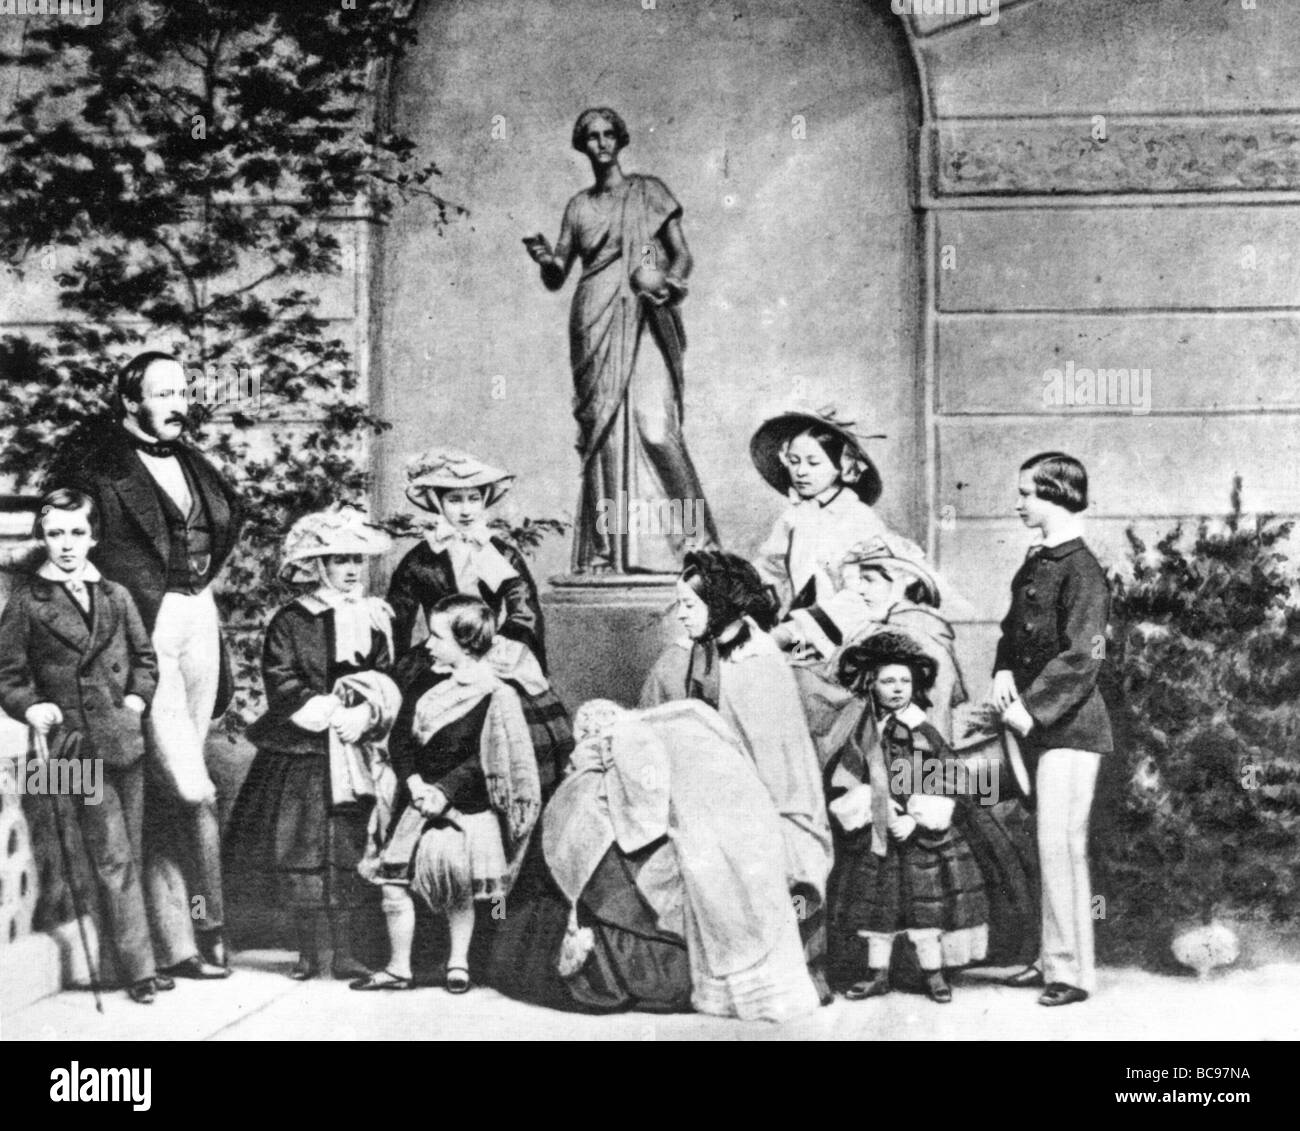 QUEEN VICTORIA and PRINCE ALBERT with their children in 1857. See Description below for names. - Stock Image